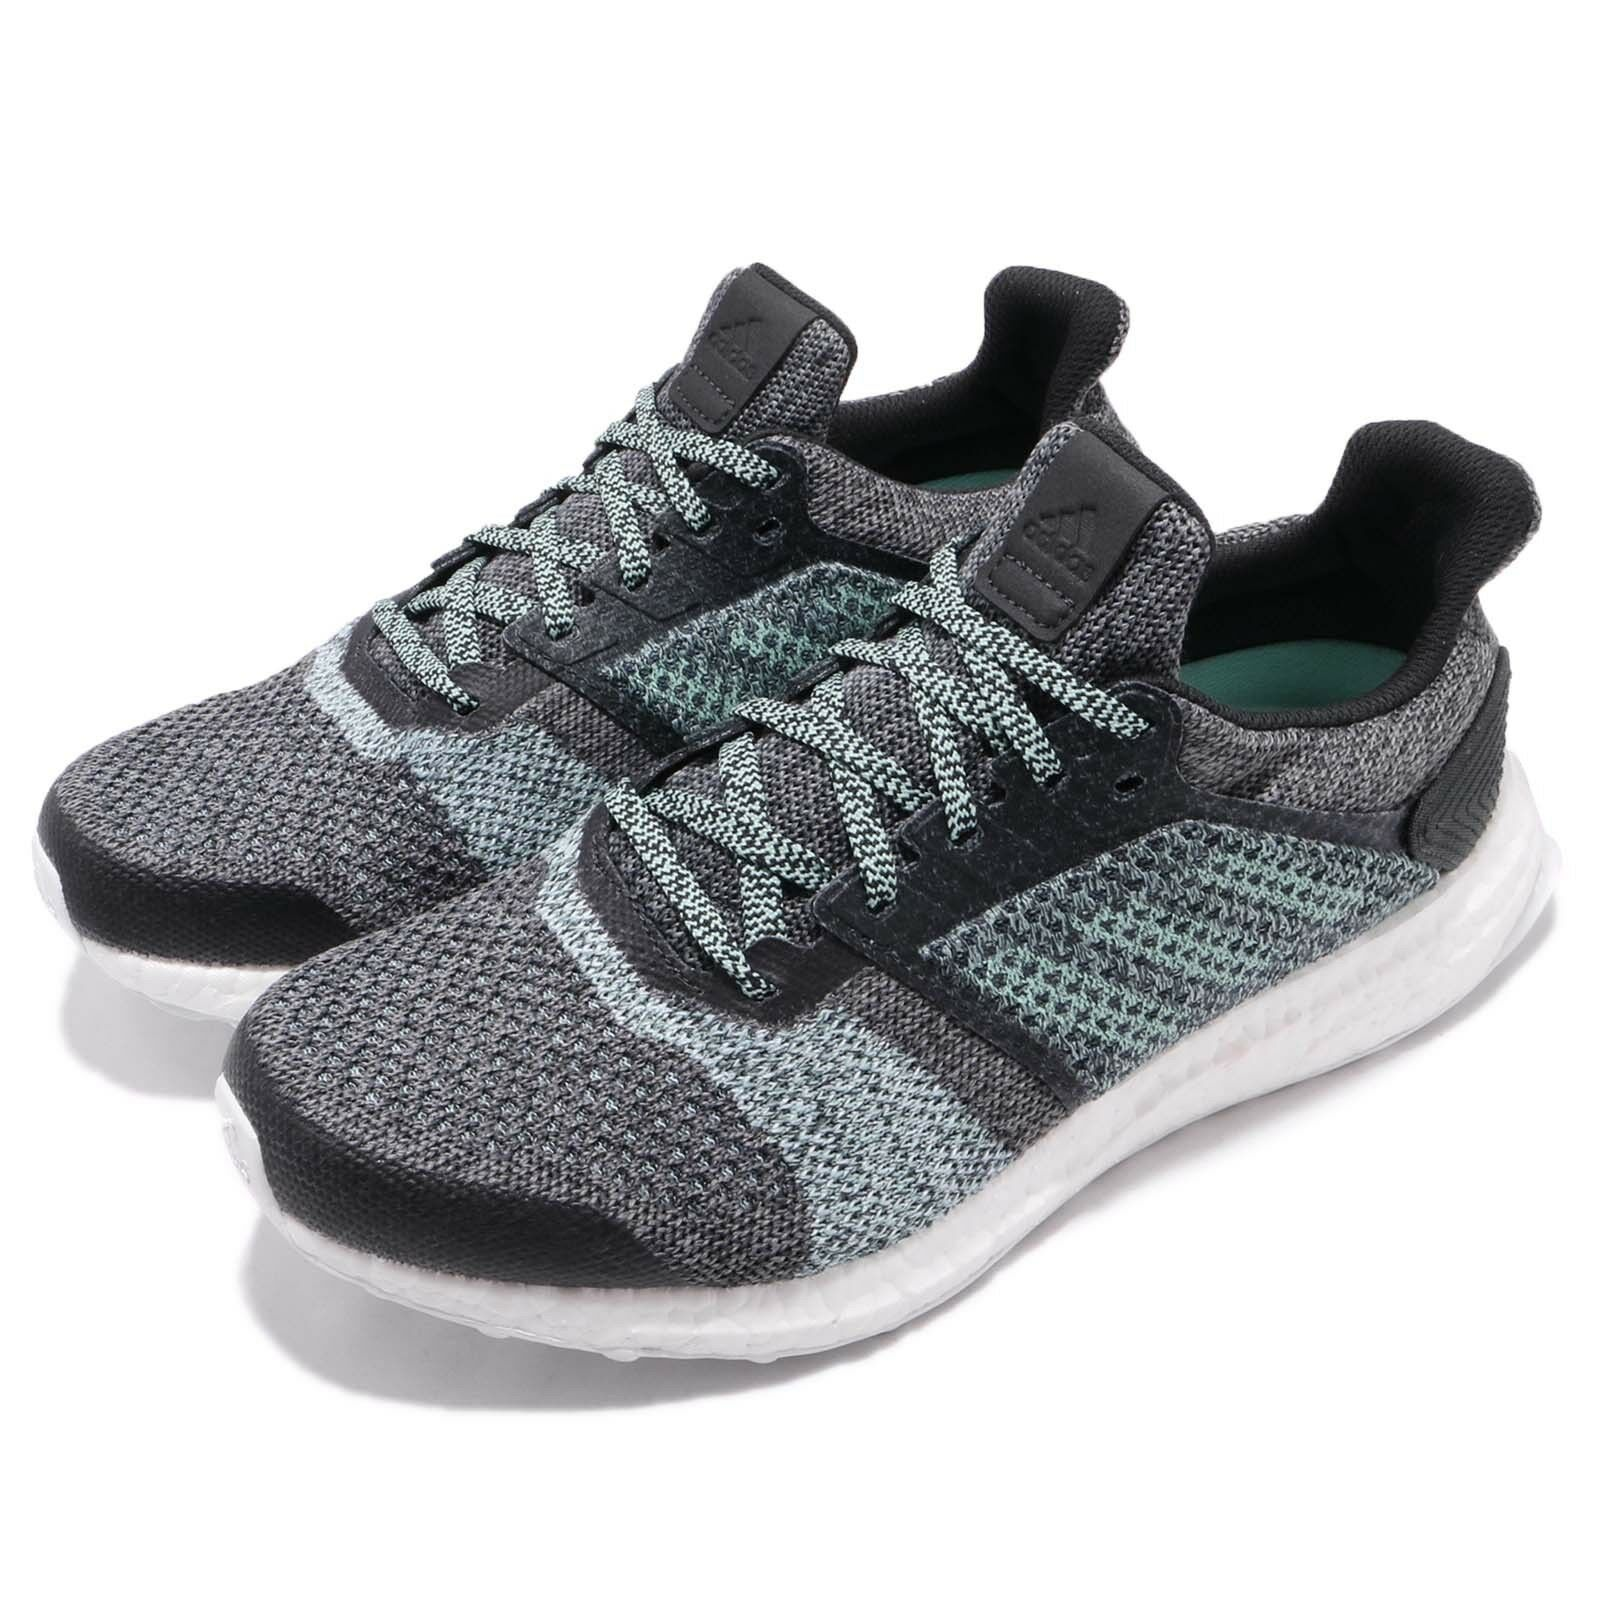 Adidas UltraBOOST ST Parley For The  Oceans bluee Spirit Grey Men Running DB0925  hastened to see